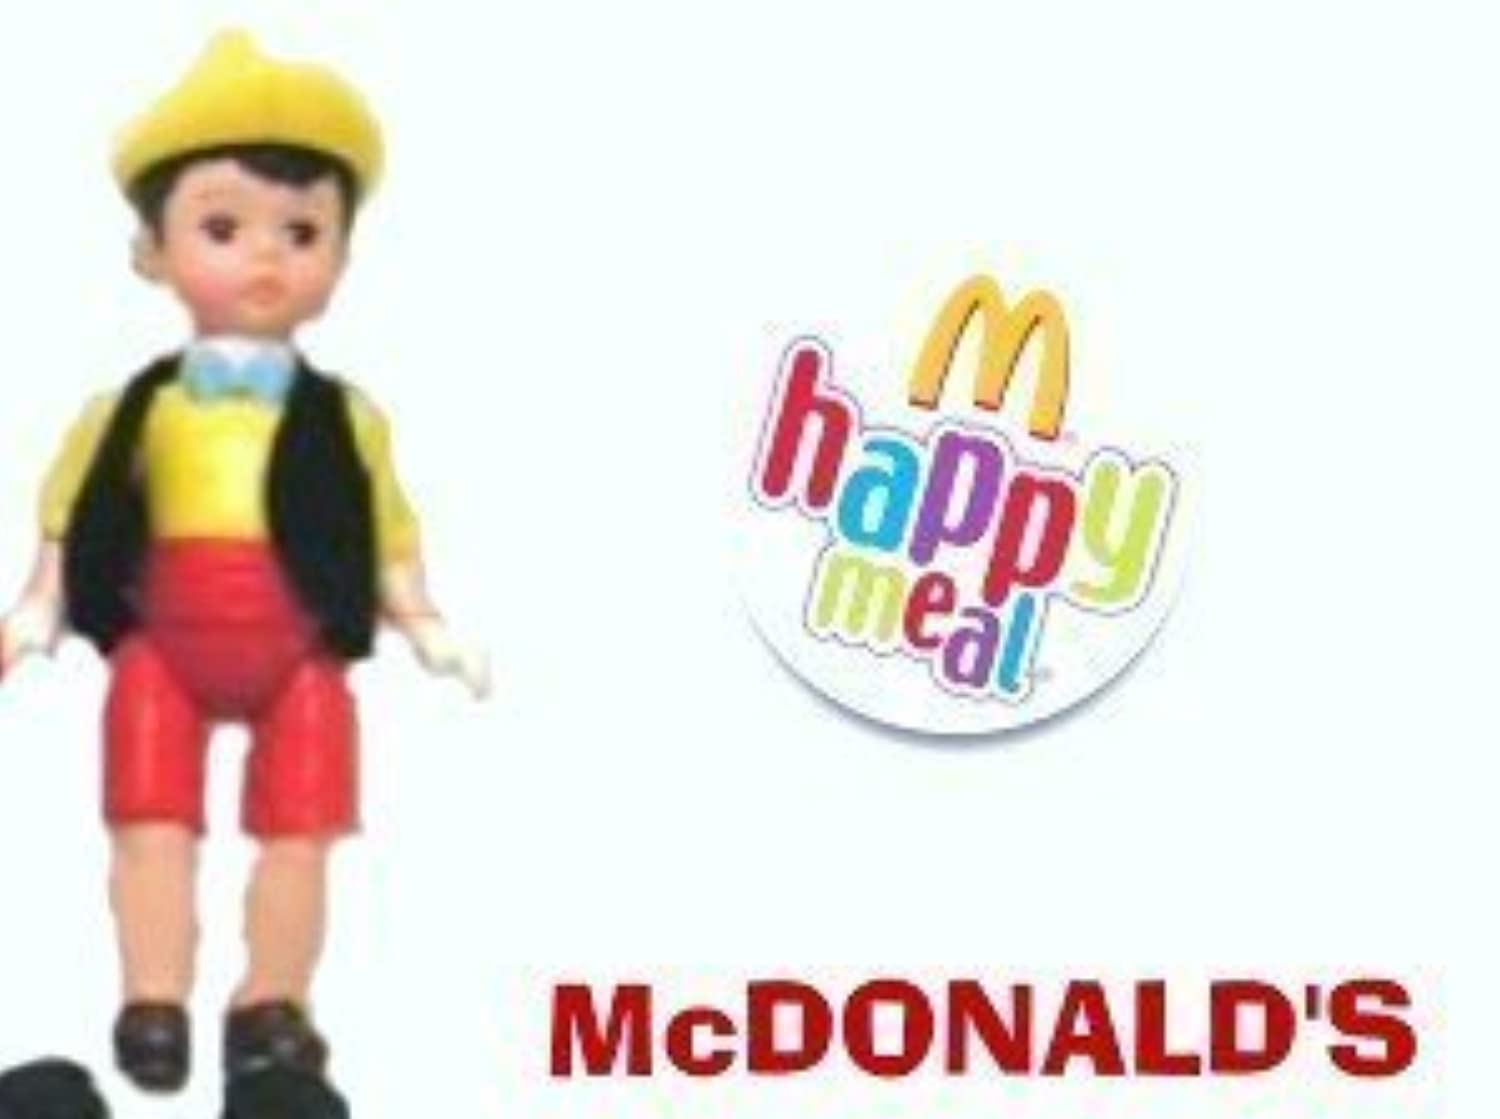 McDonalds Happy Meal Madame Alexander Pinocchio Boy Doll Toy #6 2004 [並行輸入品]